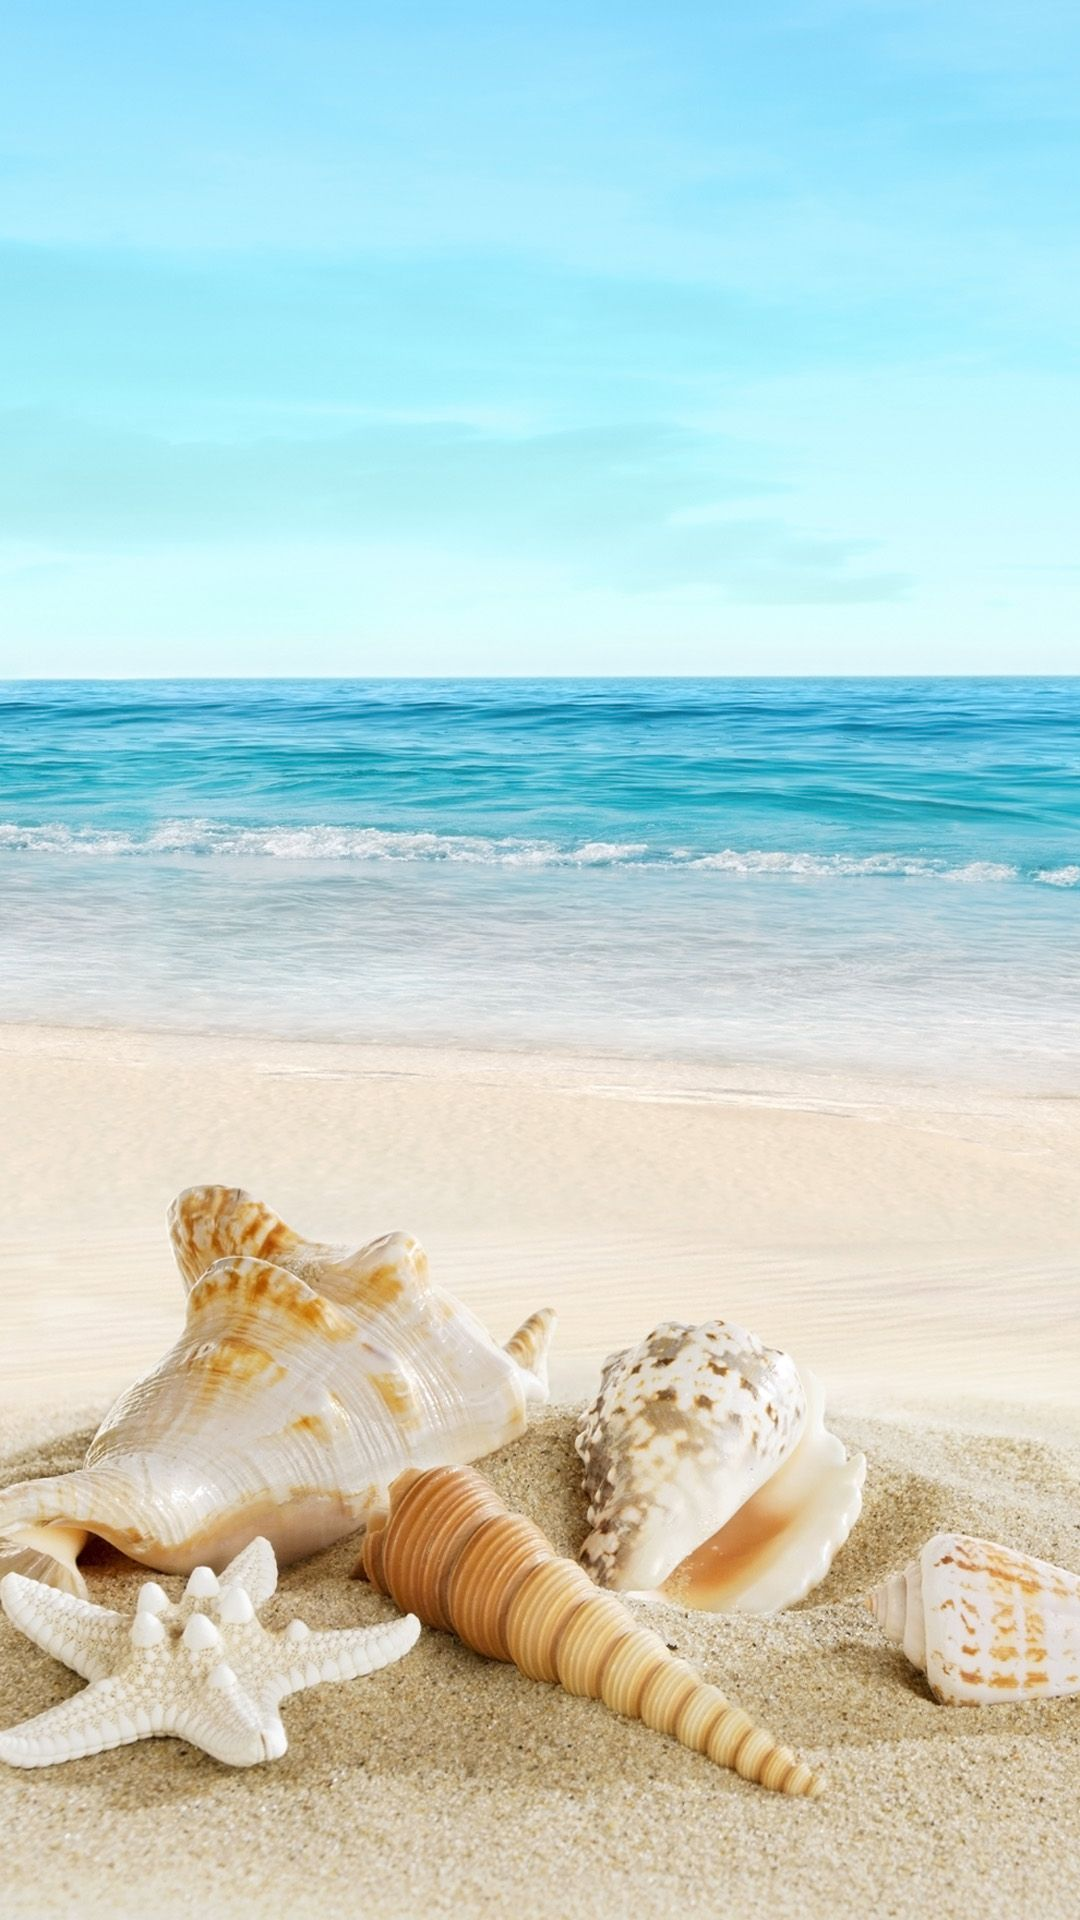 22 Awesome Beach iPhone wallpaper ideas - iPhone background #wallpaper #iphonewallpaper